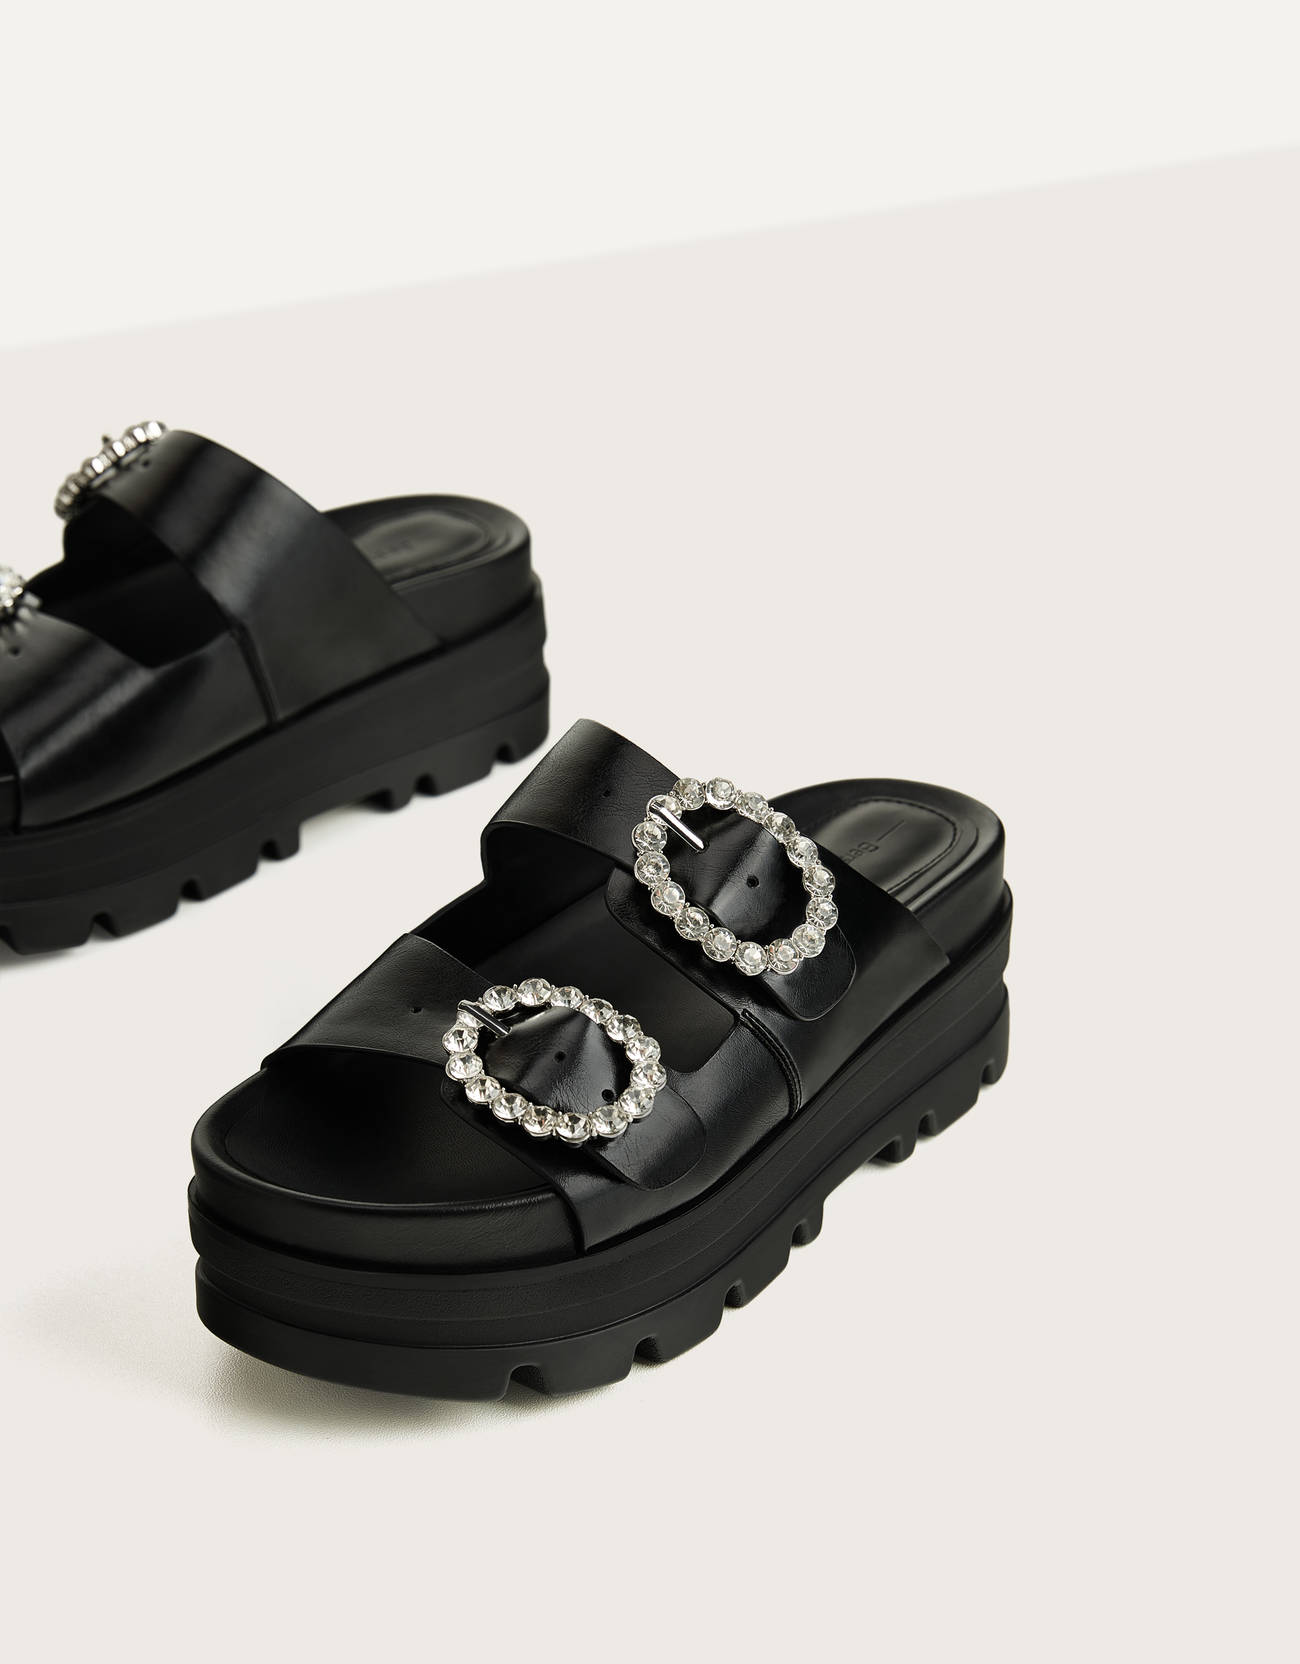 Ugly sandals with platform and jewel buckles